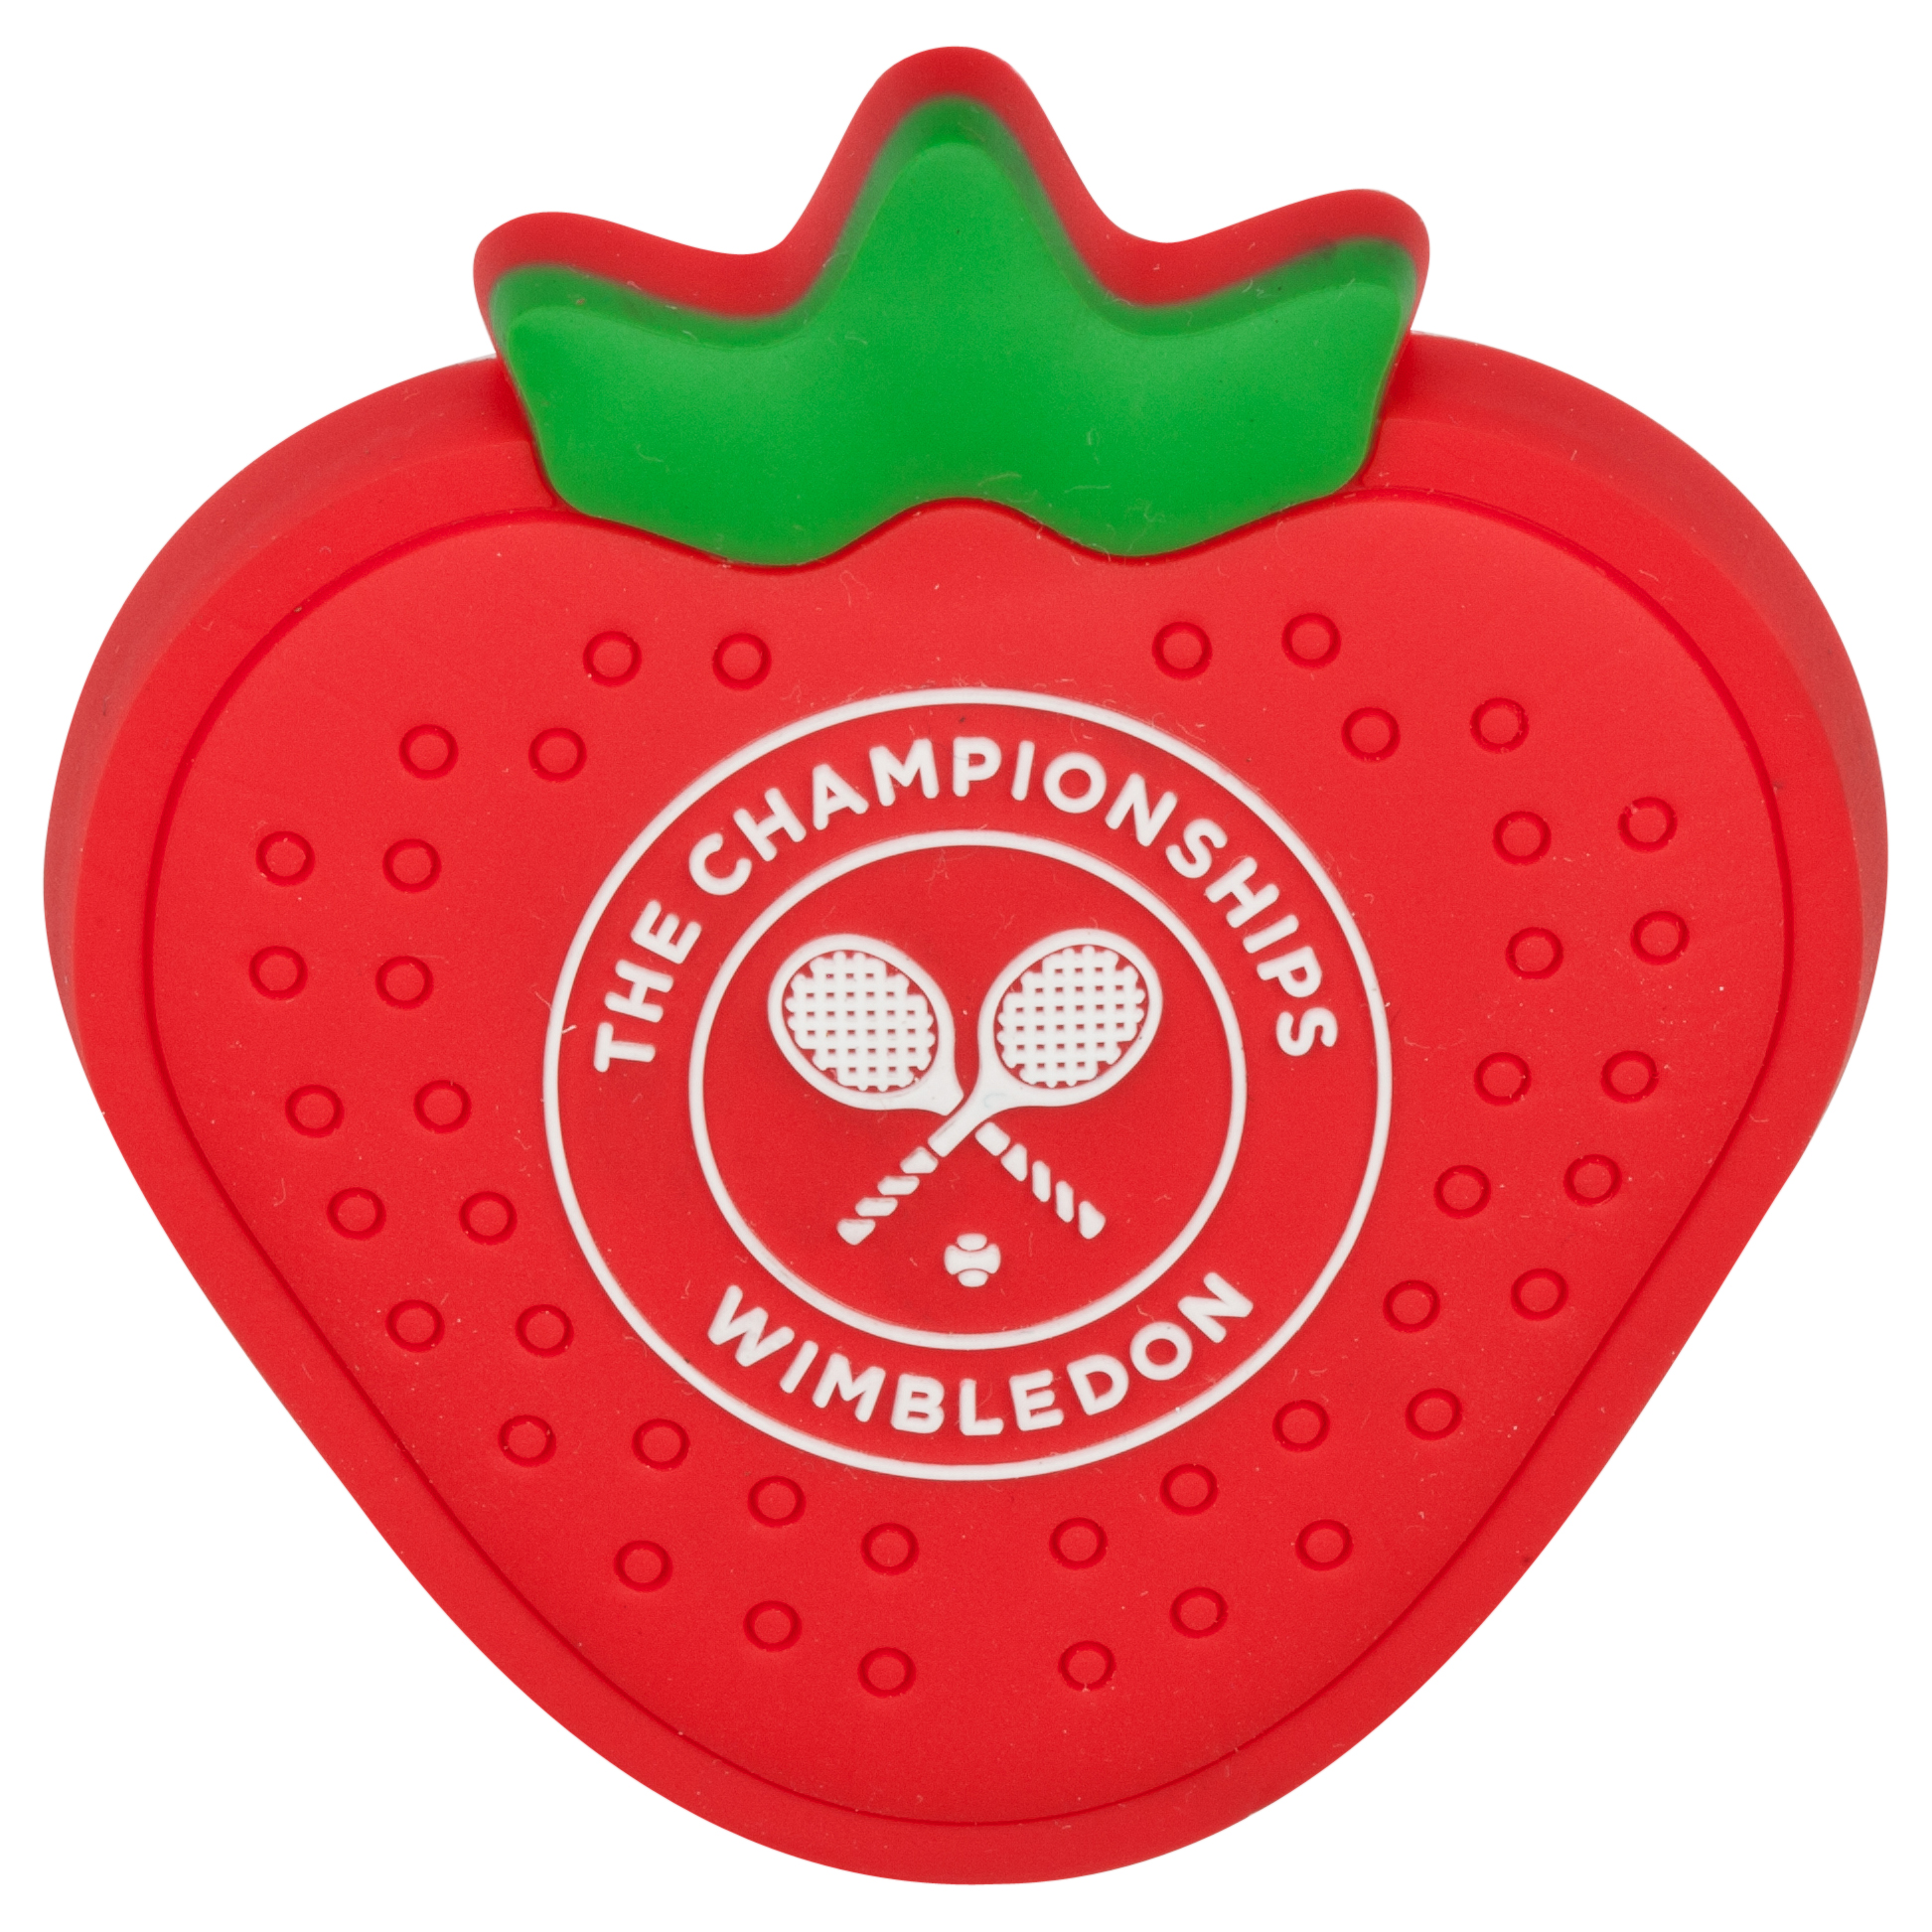 Wimbledon Strawberry Magnet